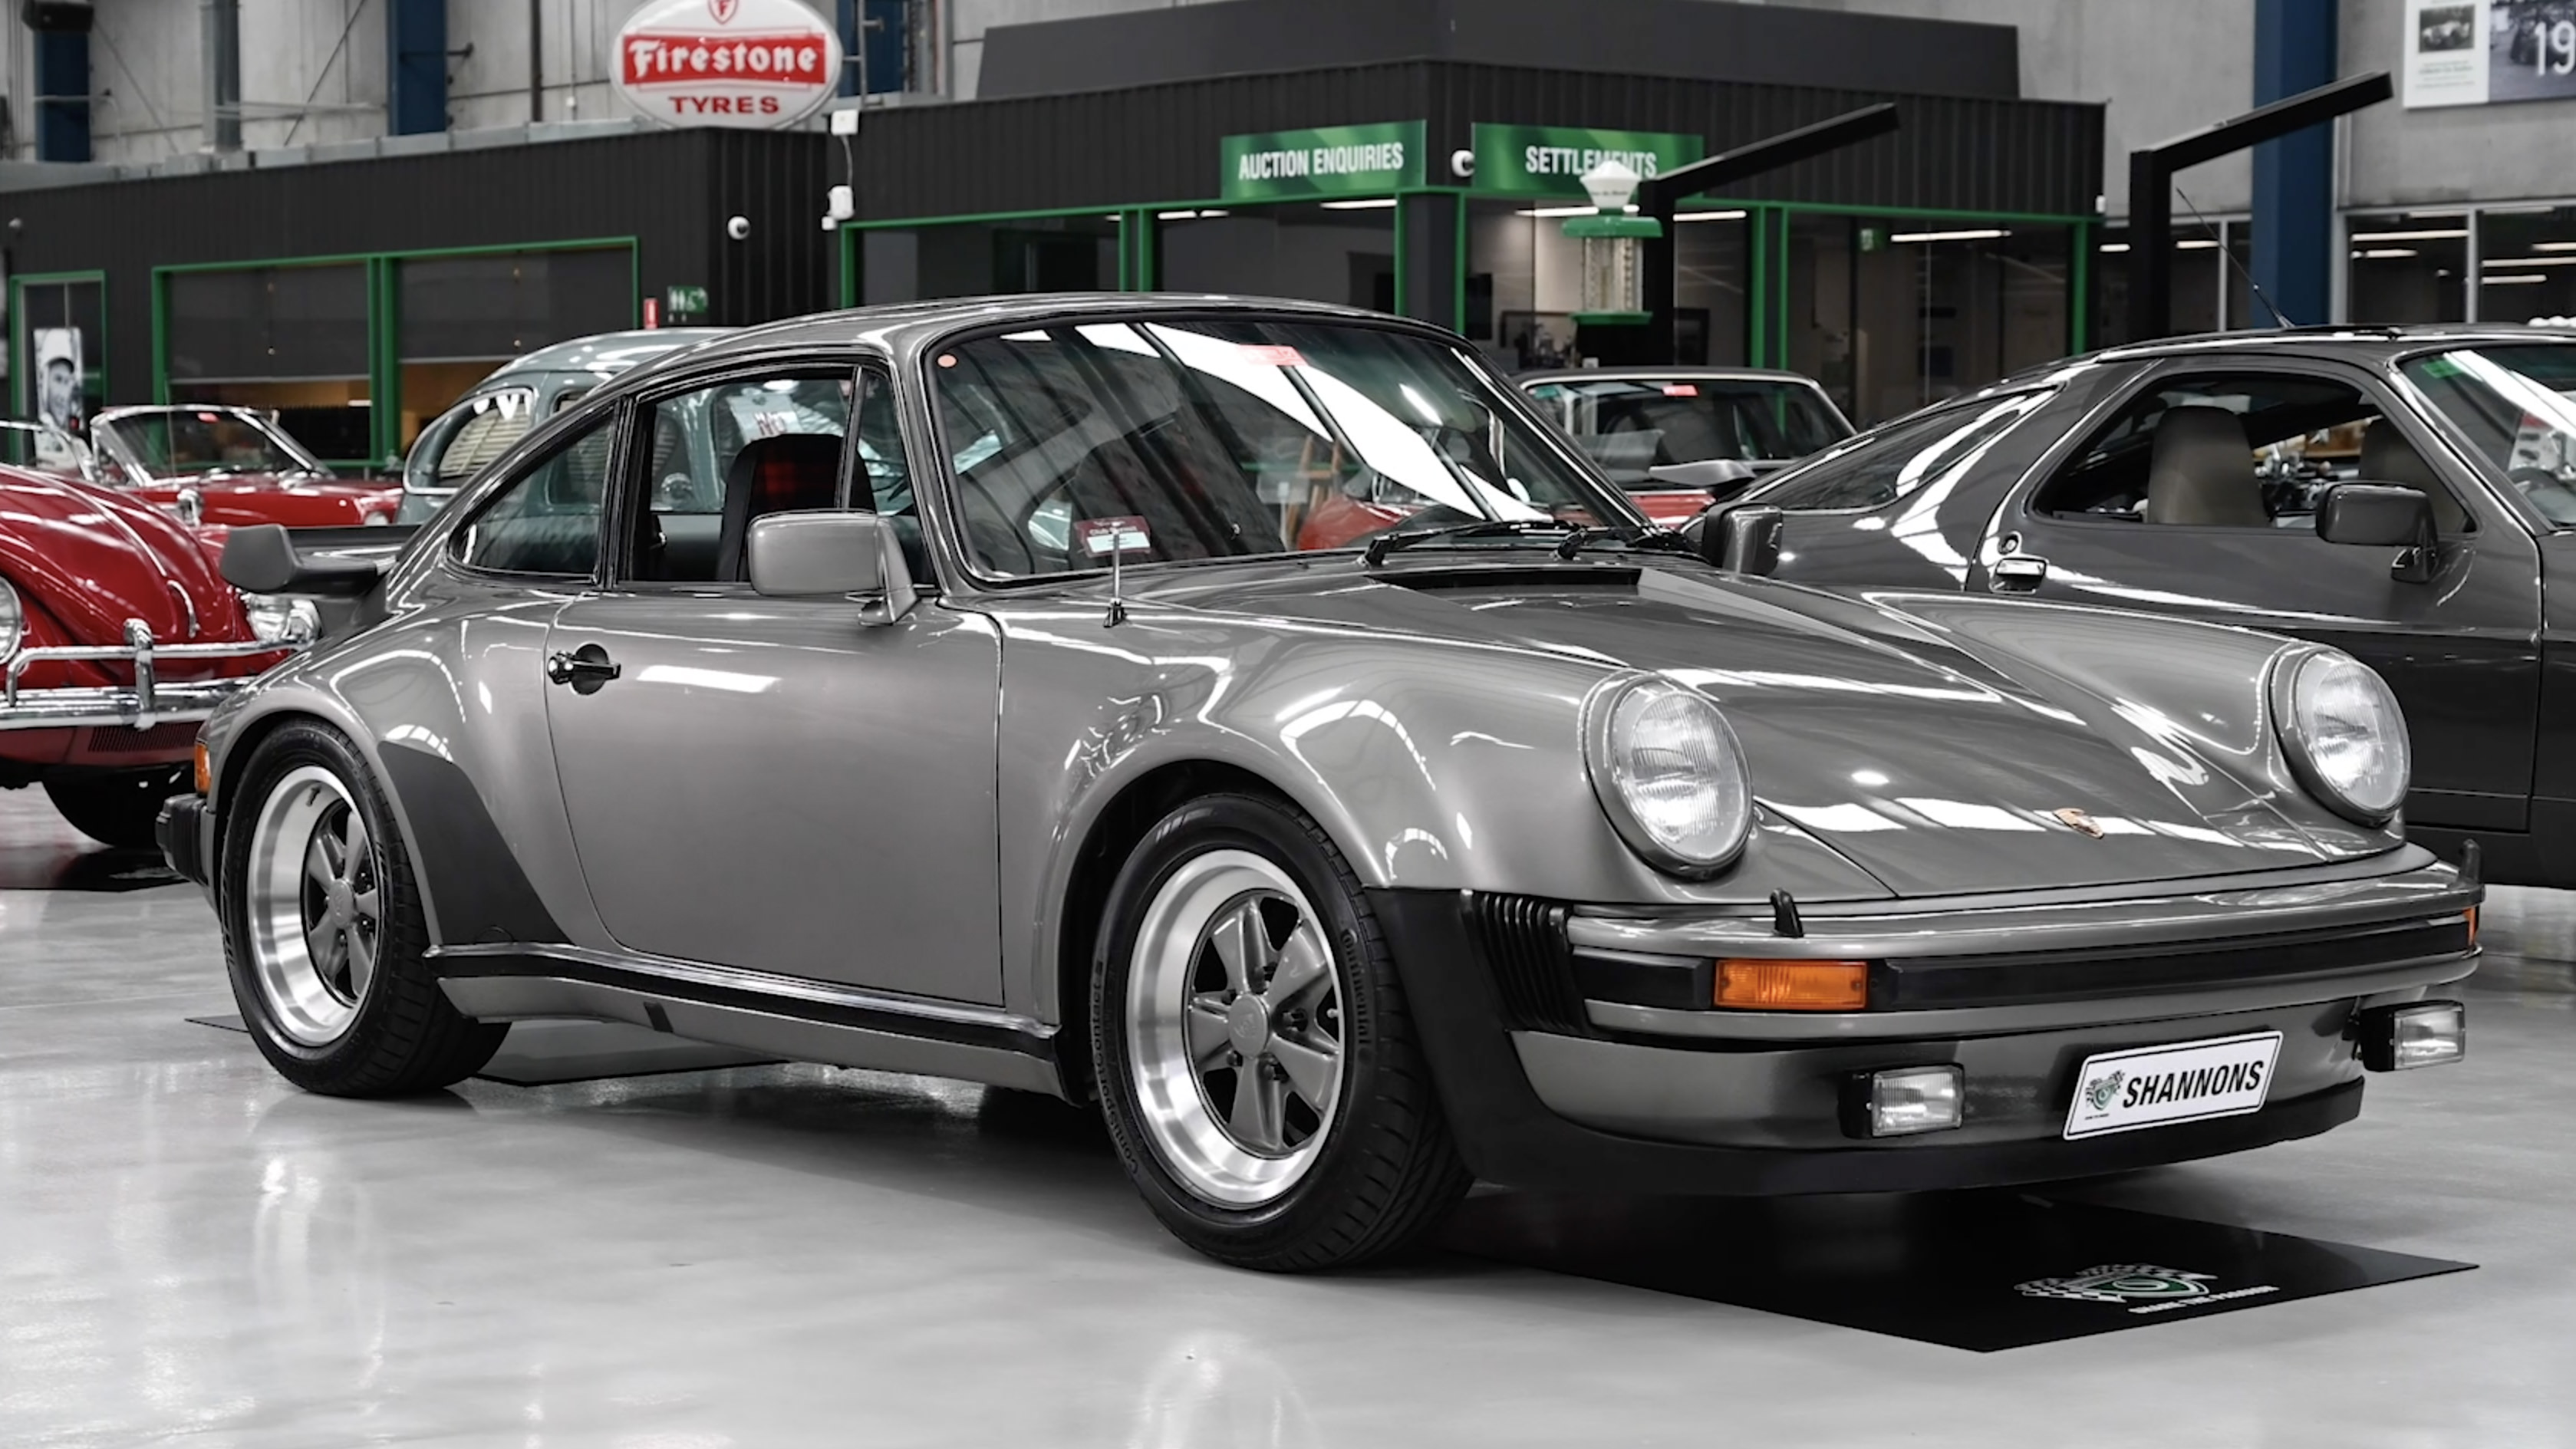 1979 Porsche 930 Turbo 3.3 Coupe (LHD) - 2020 Shannons Spring Timed Online Auction